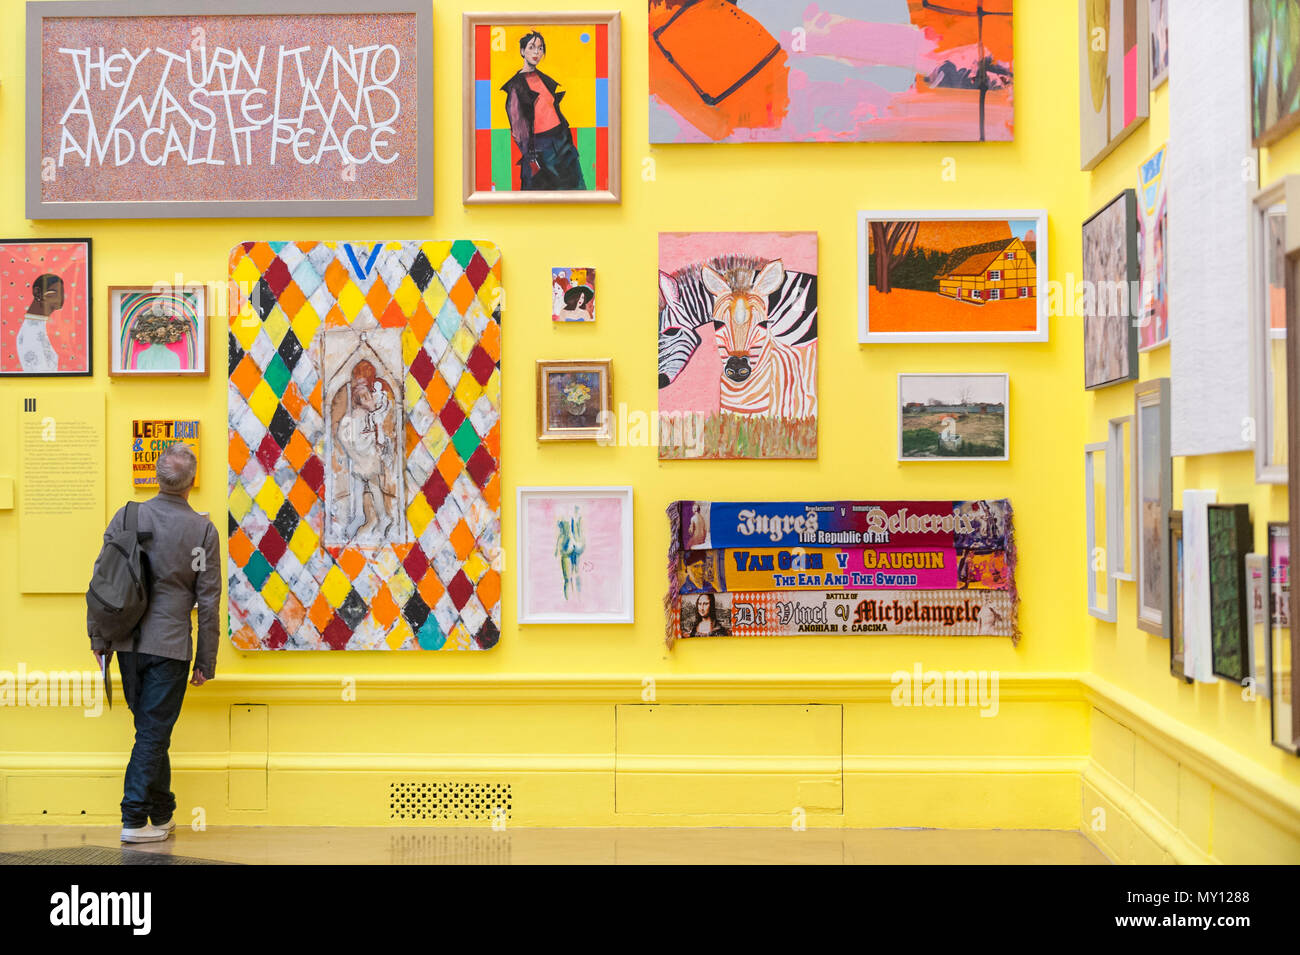 London, UK.  5 June 2018. A visitor views artworks in a vividly yellow painted gallery at the preview of the 250th Summer Exhibition at the Royal Academy of Arts in Piccadilly, which has been co-ordinated by Grayson Perry RA this year.  Running concurrently, is The Great Spectacle, featuring highlights from the past 250 years.  Both shows run 12 June to 19 August 2018.  Credit: Stephen Chung / Alamy Live News - Stock Image